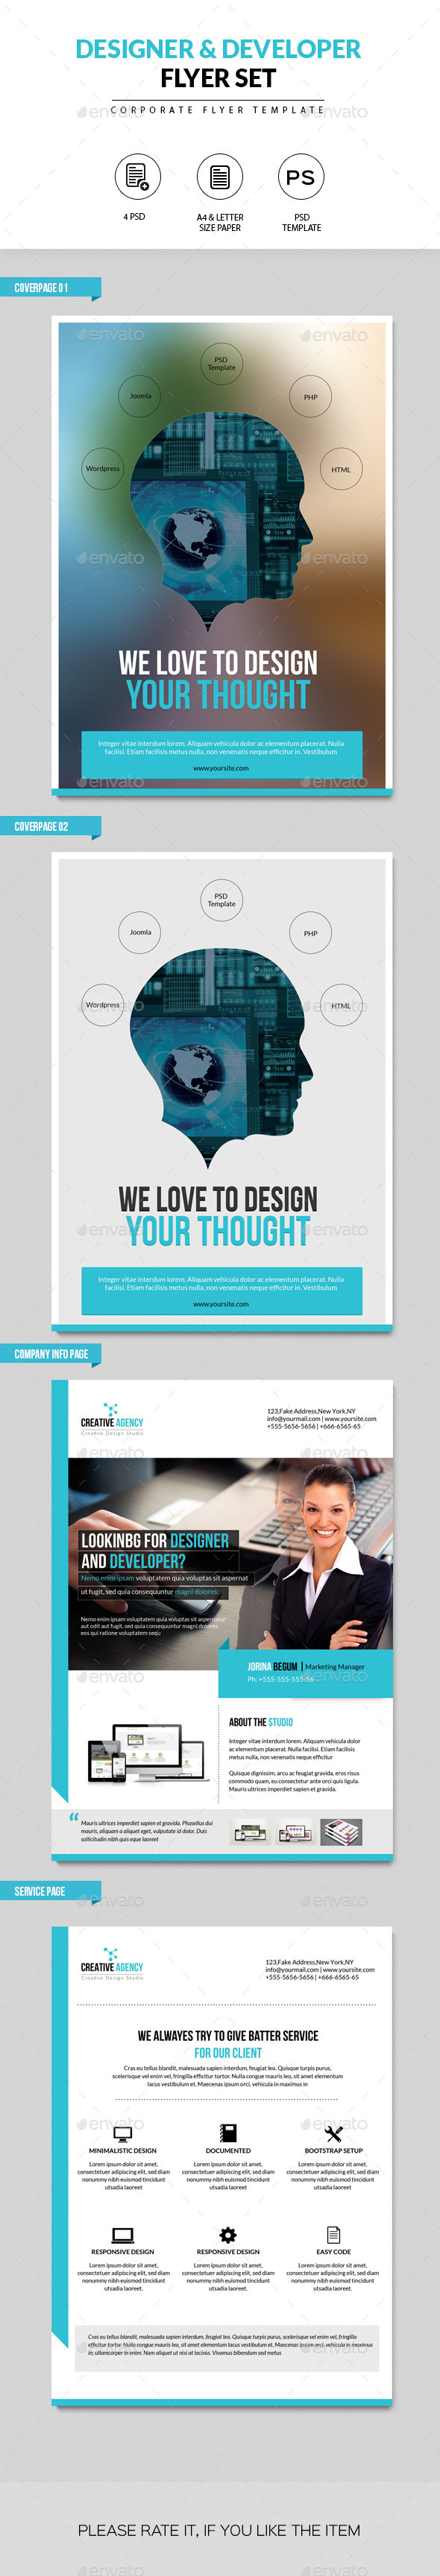 Flyer Set for Designer and Developer  - Corporate Flyers